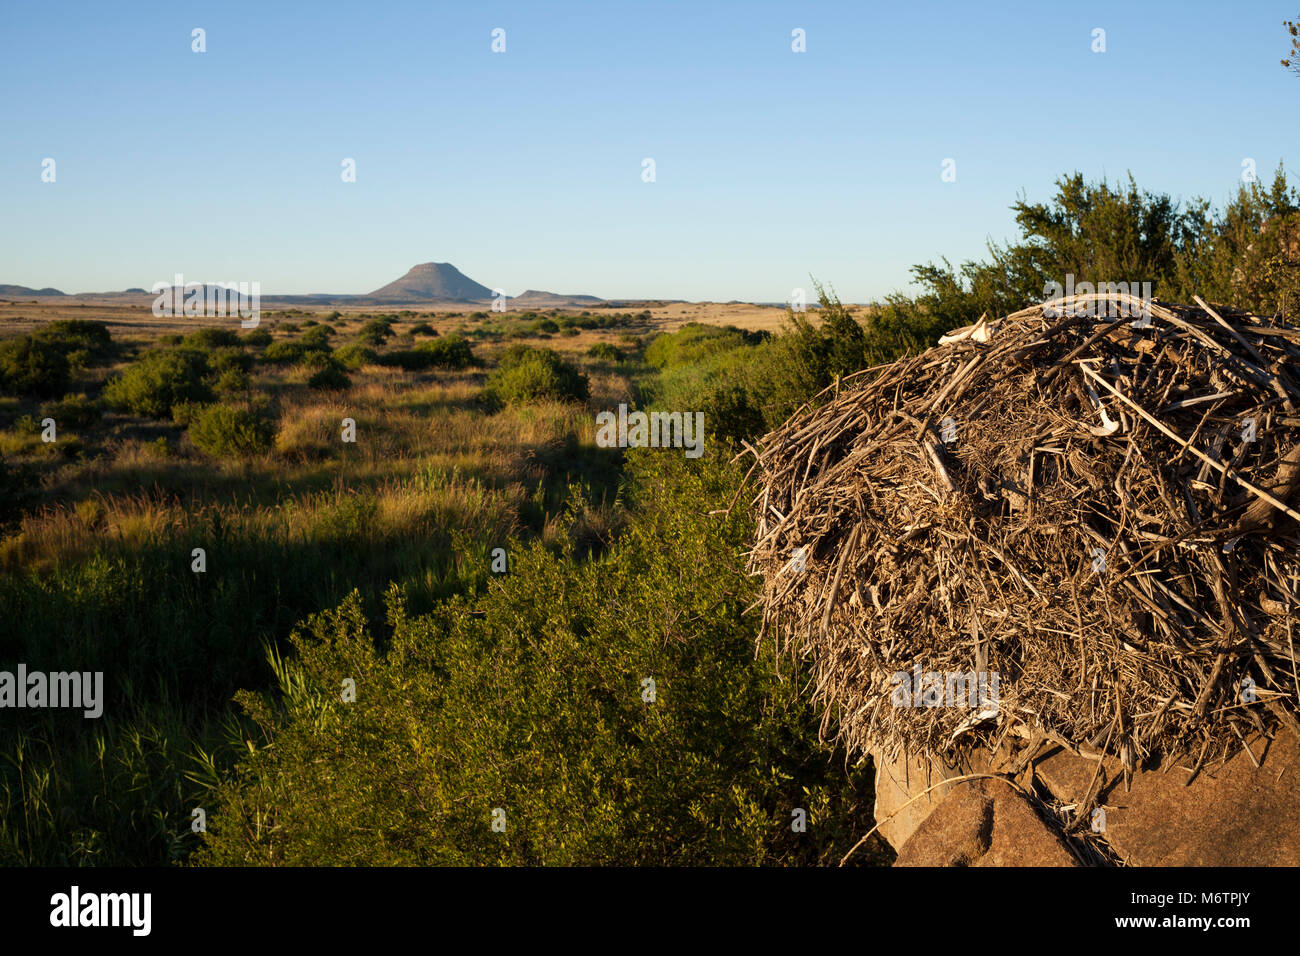 A hammerkop nest situated on a rock face overlooking the riparian habitat alongside a stream near Colesberg. - Stock Image